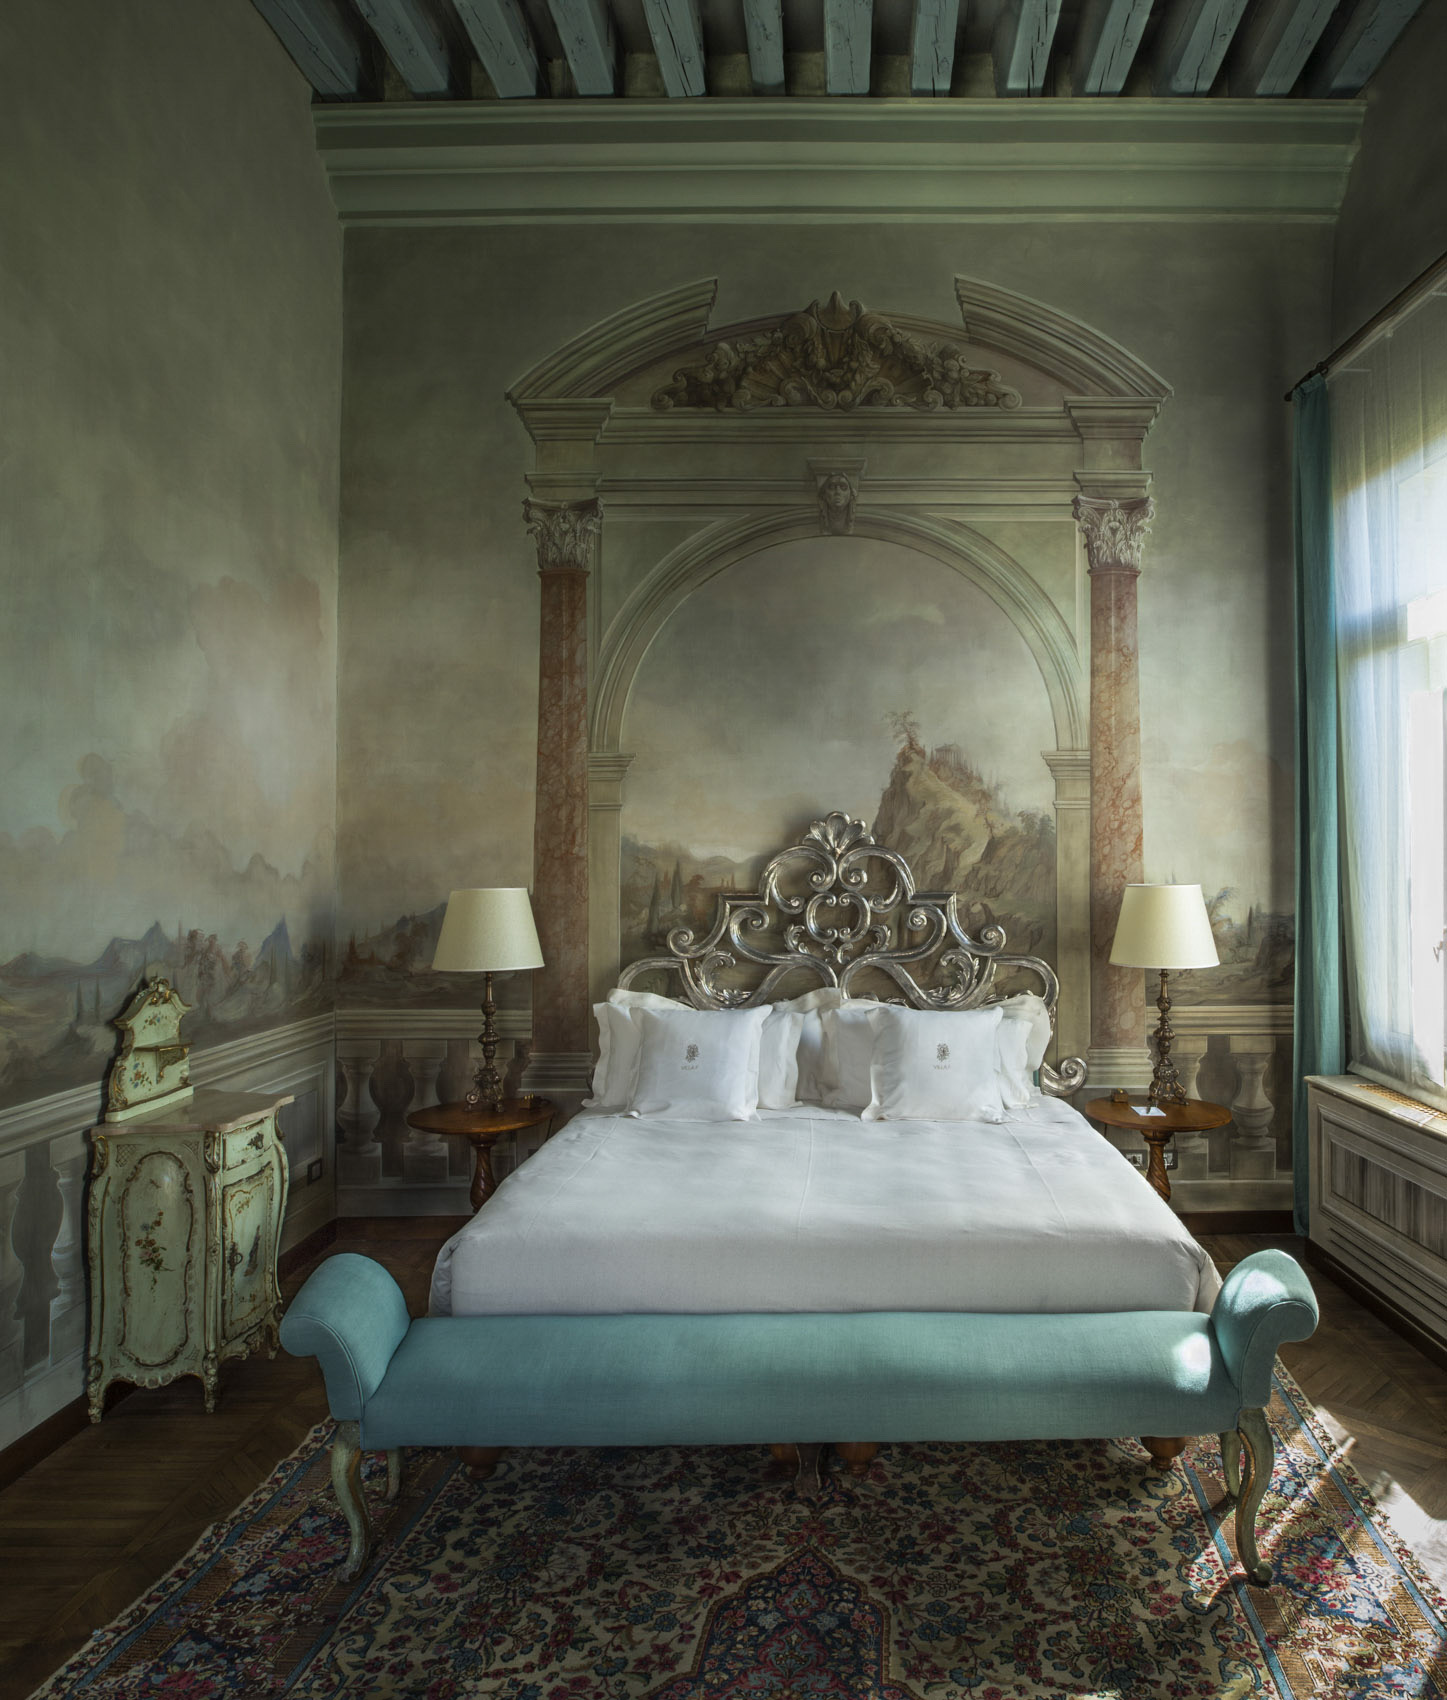 O18-580 Bed and mural at Villa F, Venice